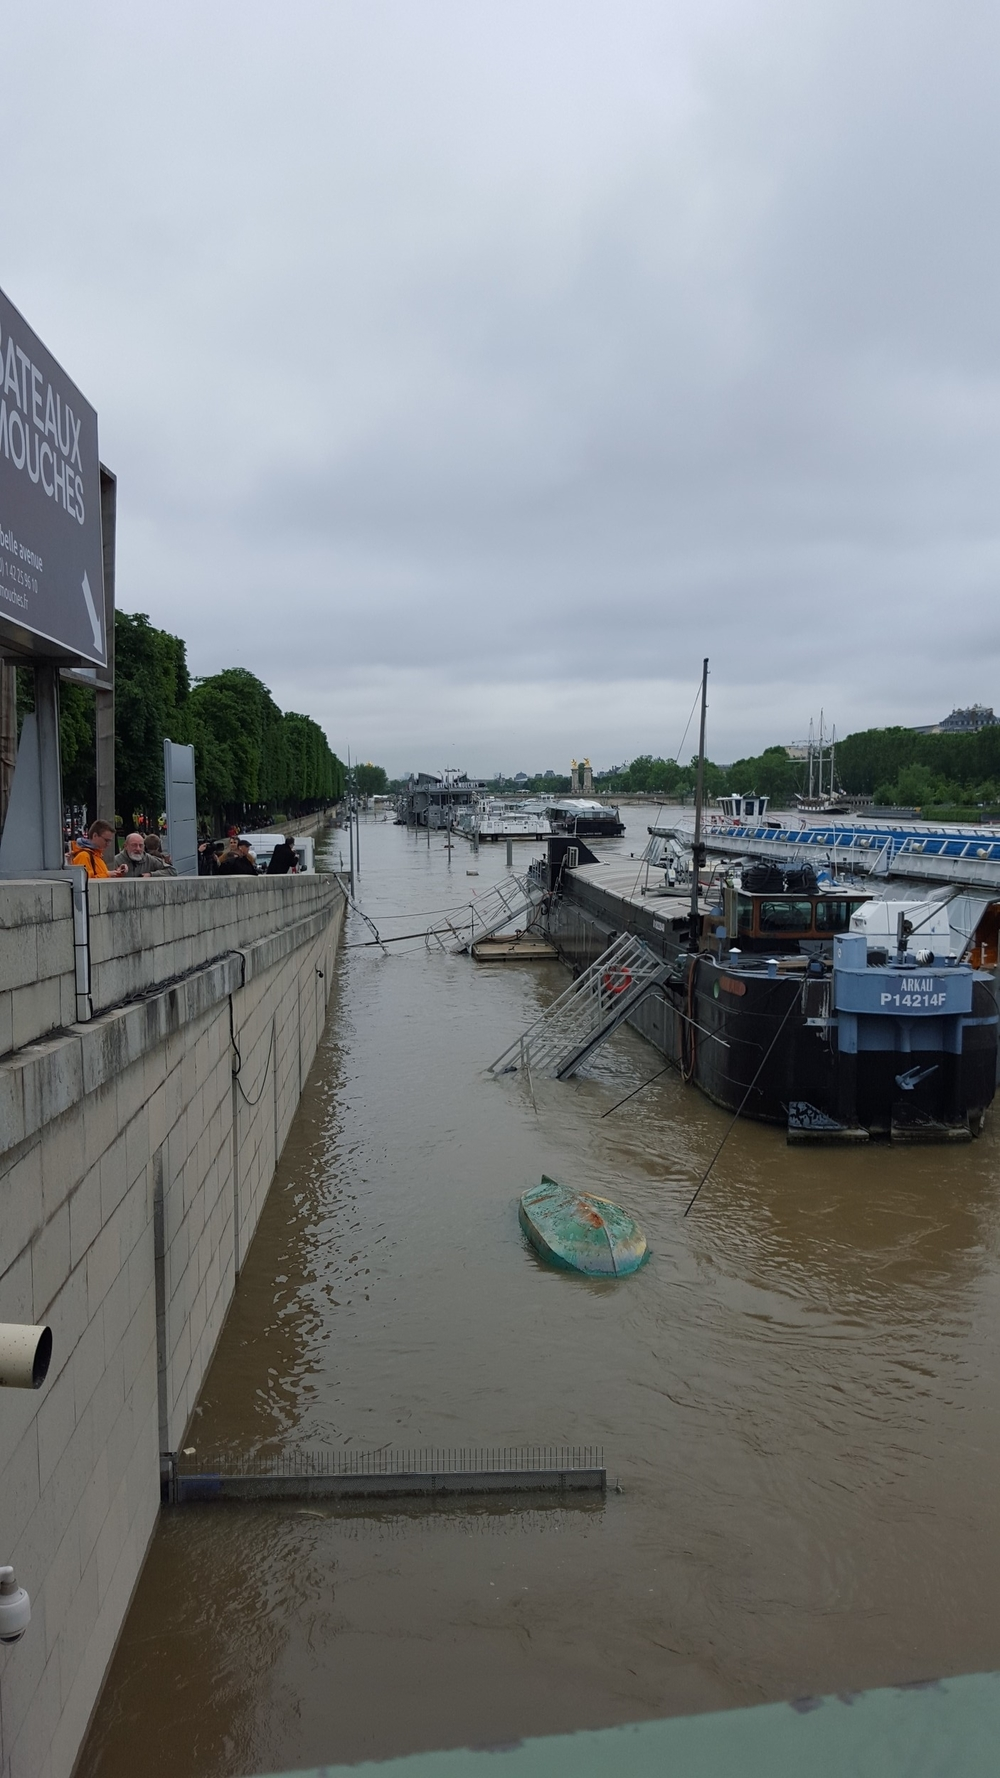 The walkway down to the quai of the Seine, flooded